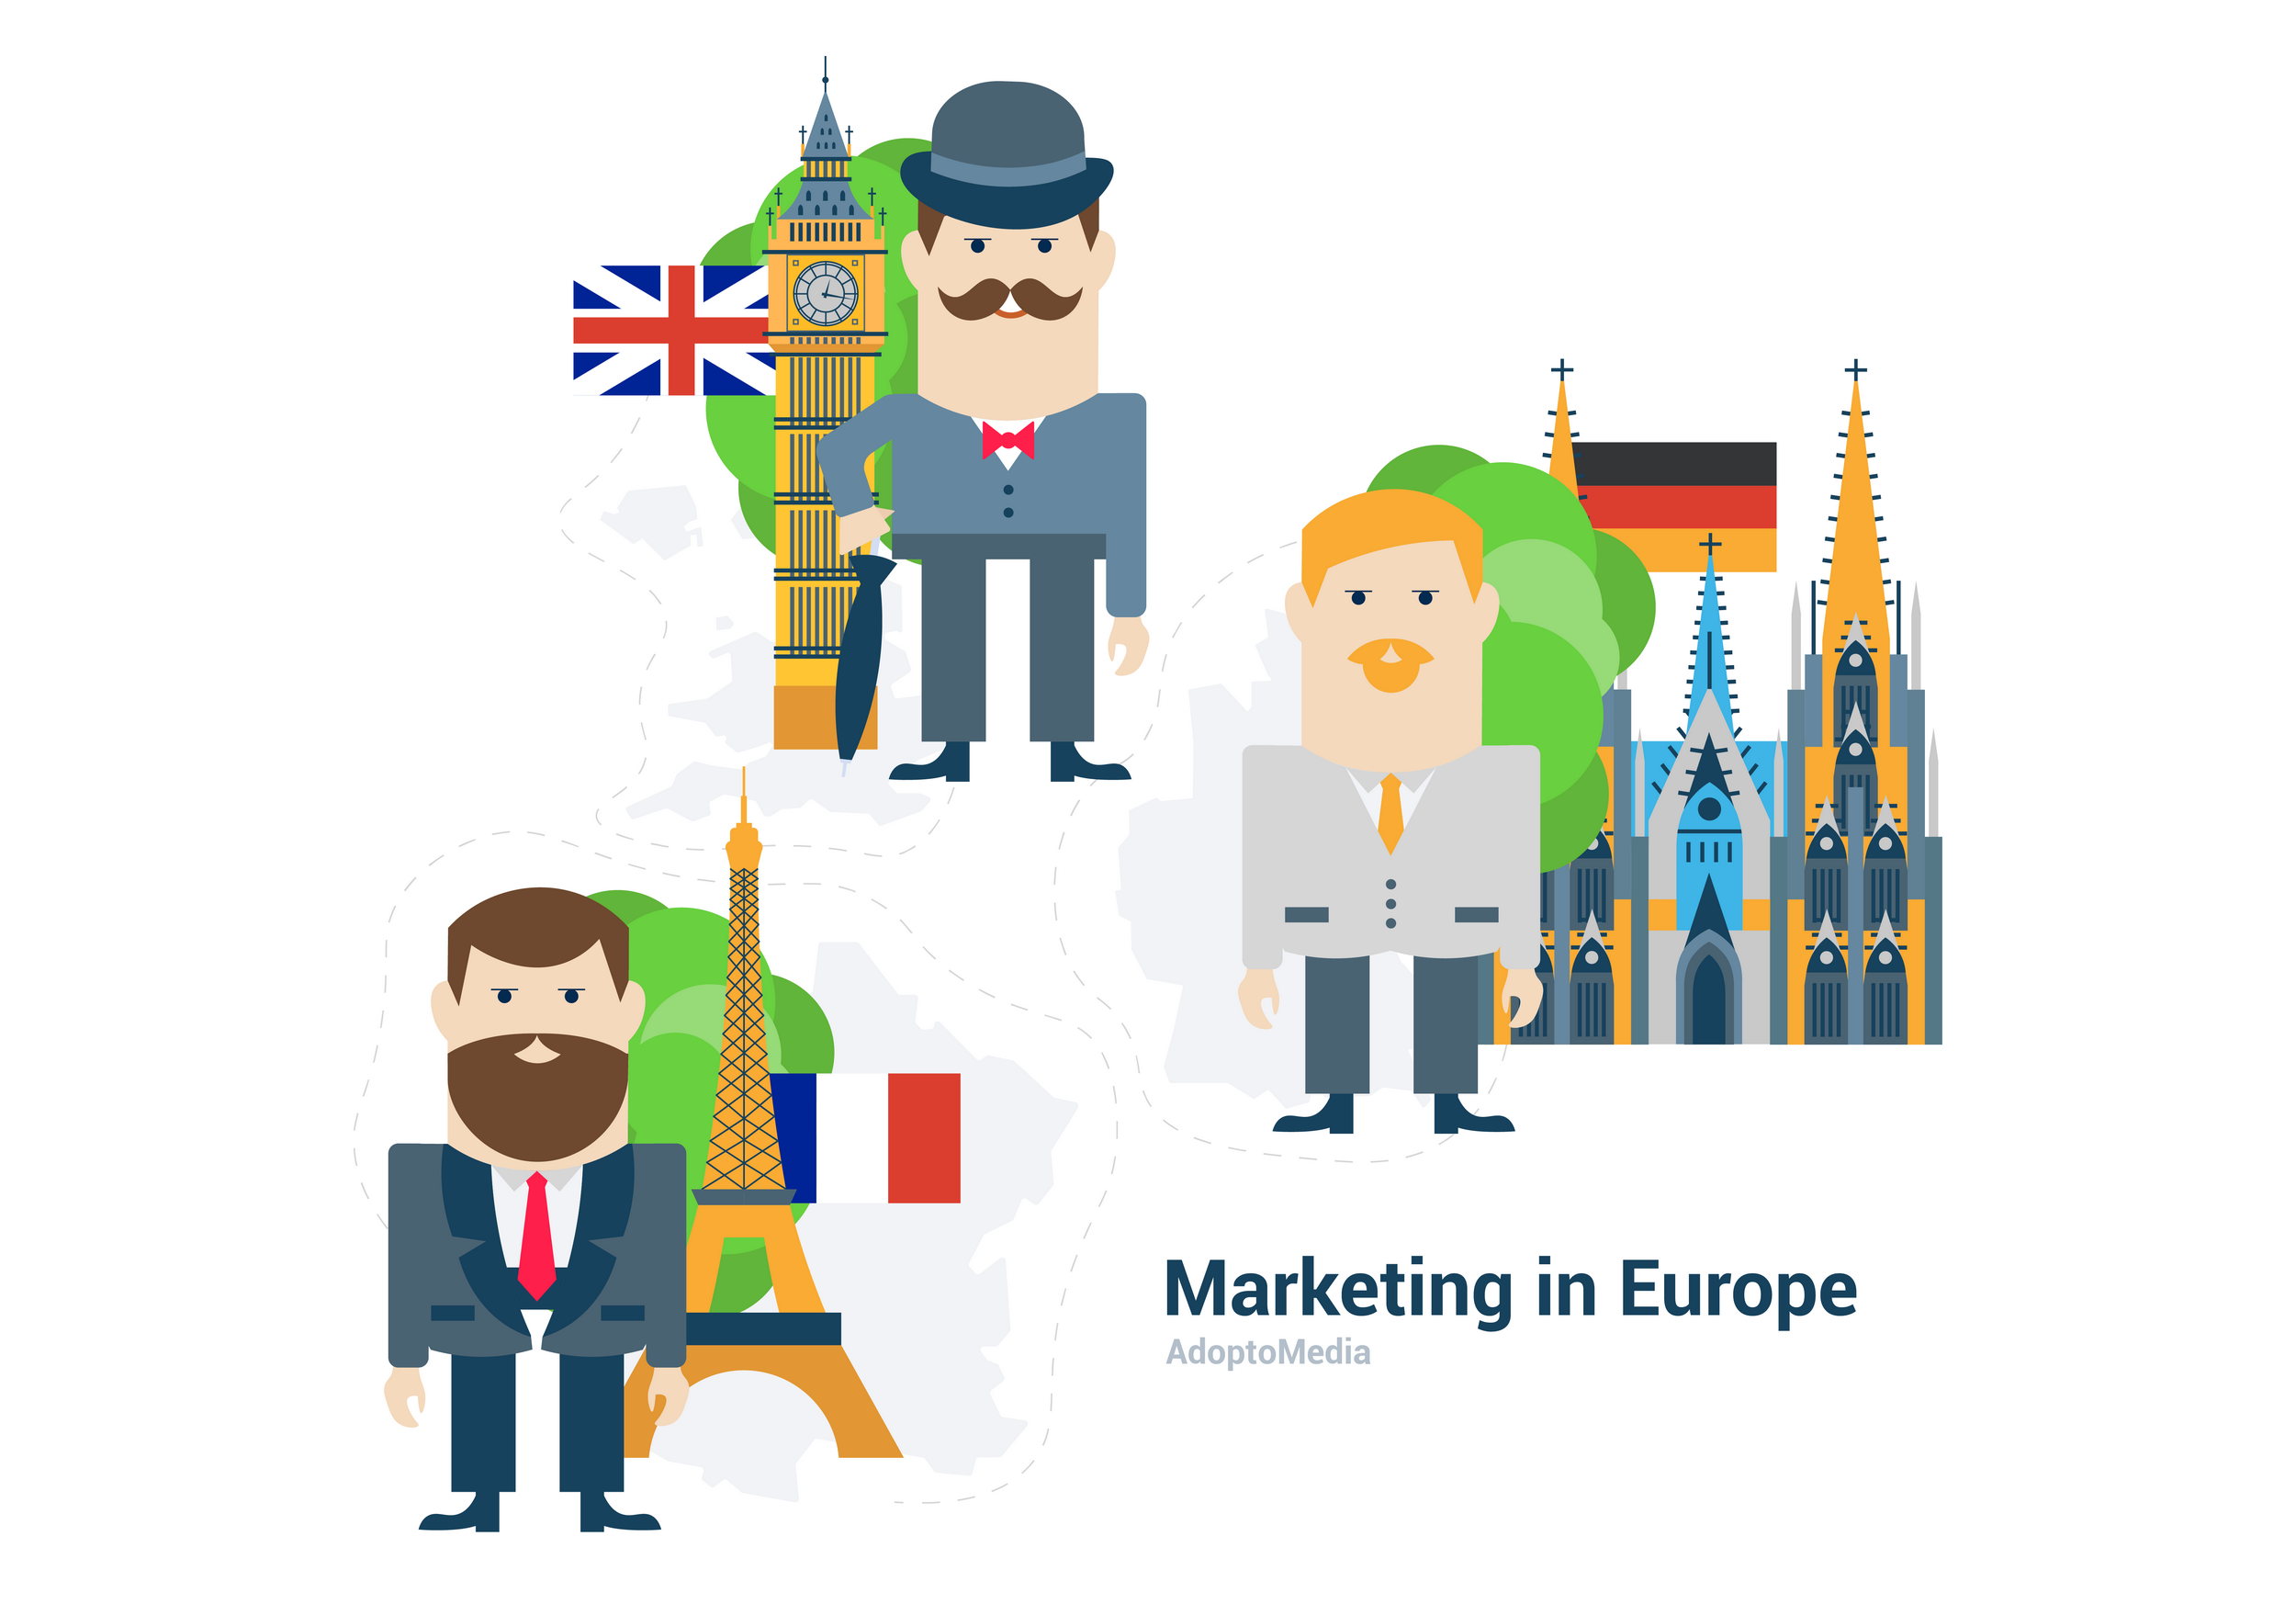 European marketing, EU marketing, the UK, France, Germany, marketing trends, ROMI measurement, ROMI increase, marketing automation, marketing technology, martech